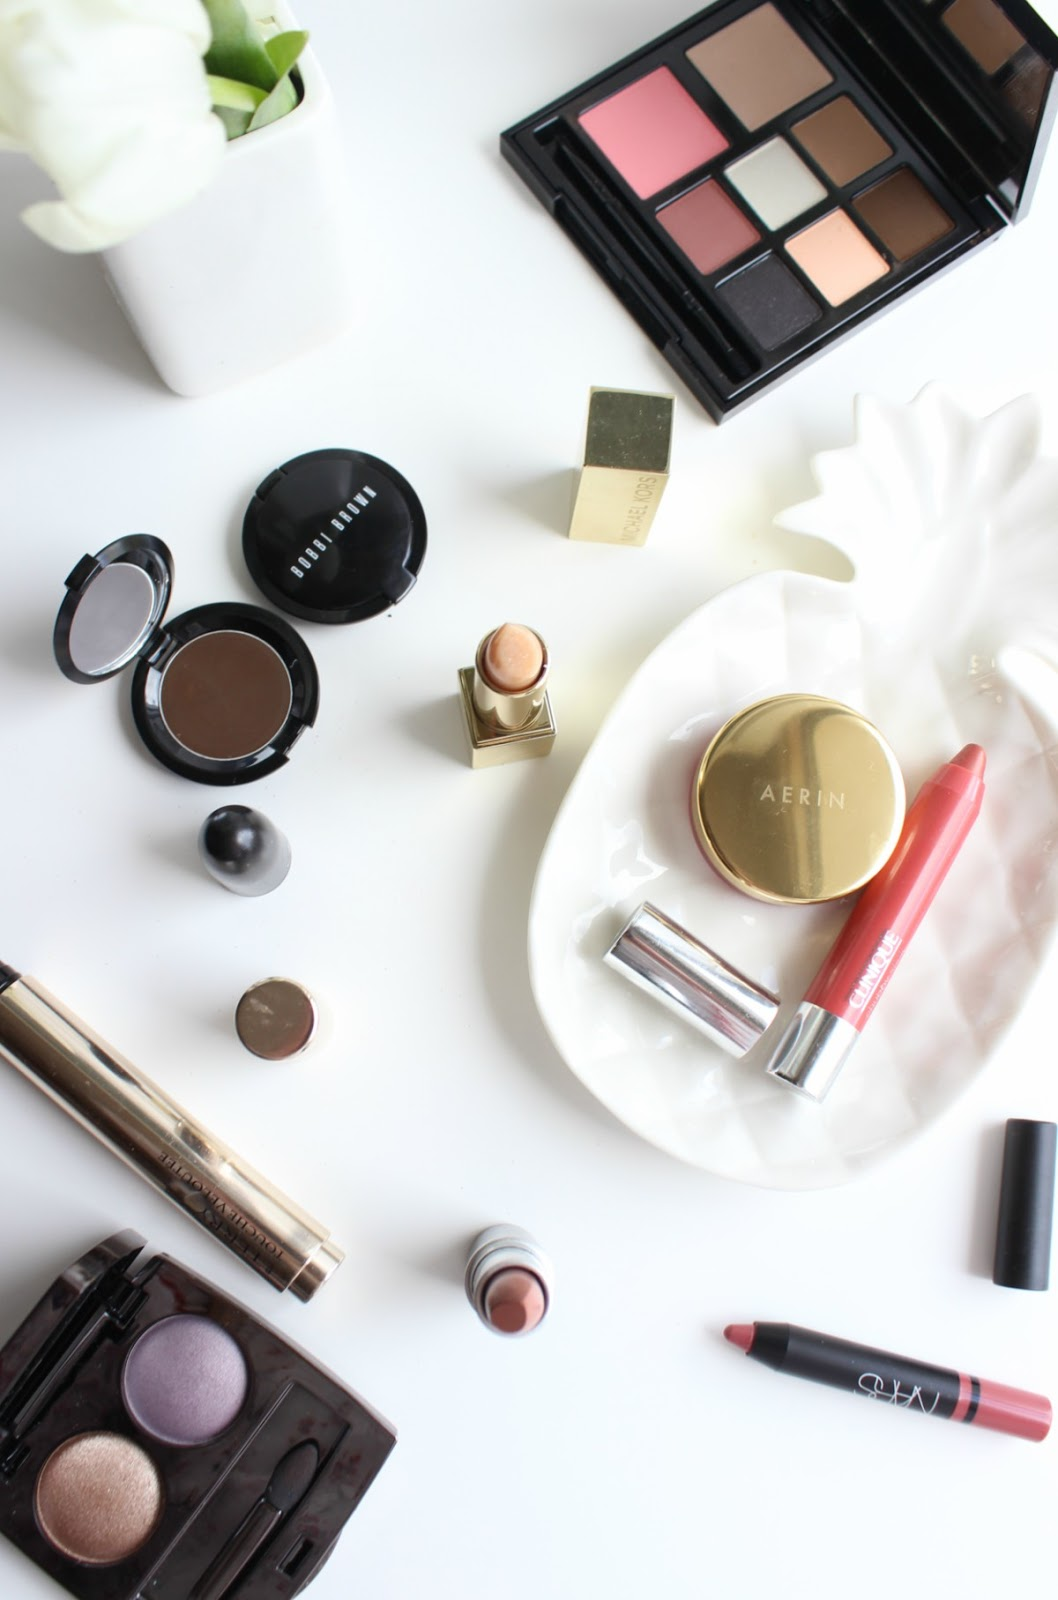 When Does a Beauty Product Become High End